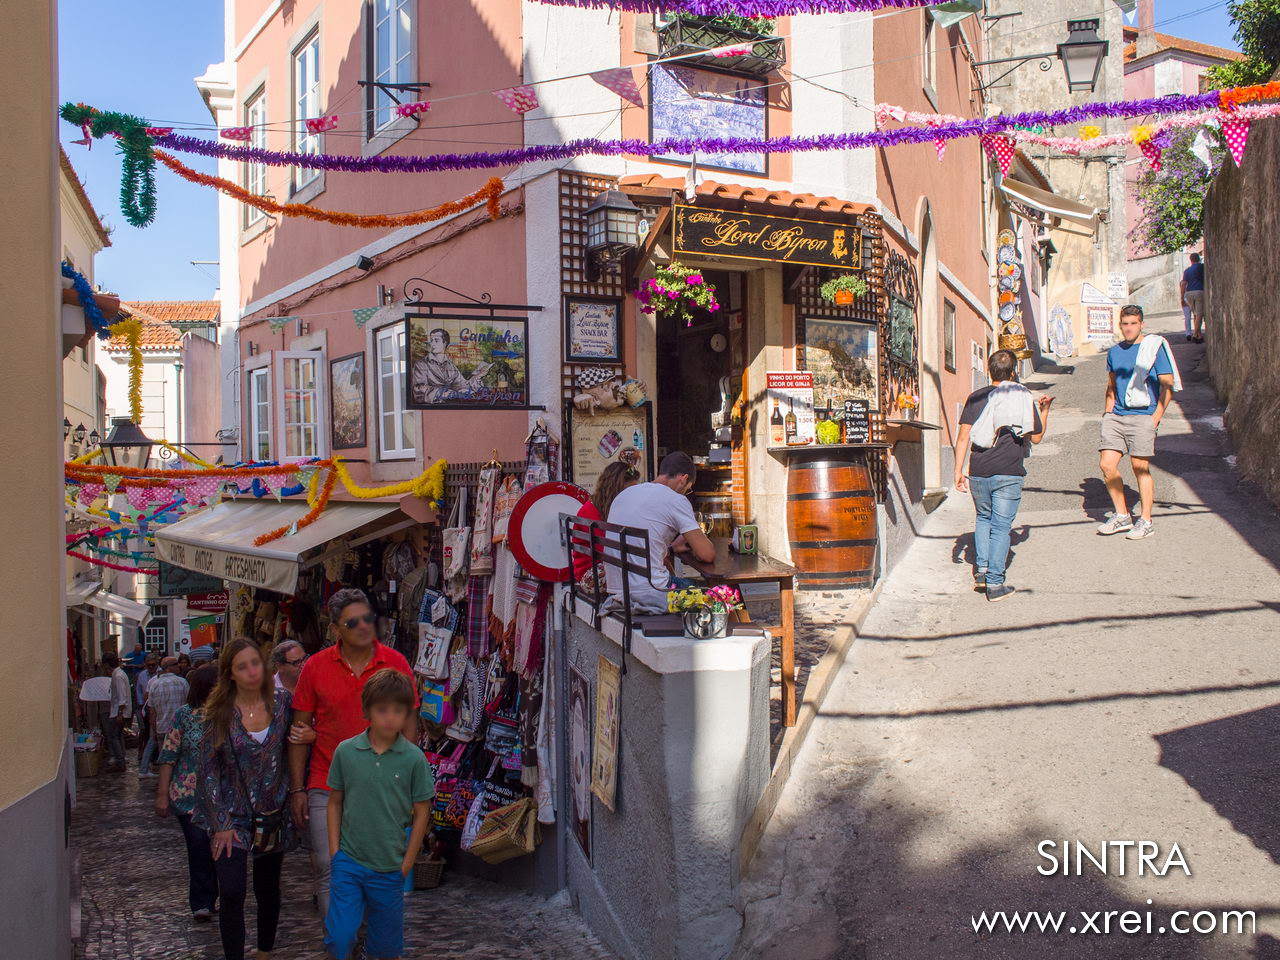 The streets of Sintra are narrow streets, with a colorful and cheerful atmosphere created by the small shop that serves the many visitors who arrive to know the various attractions ...